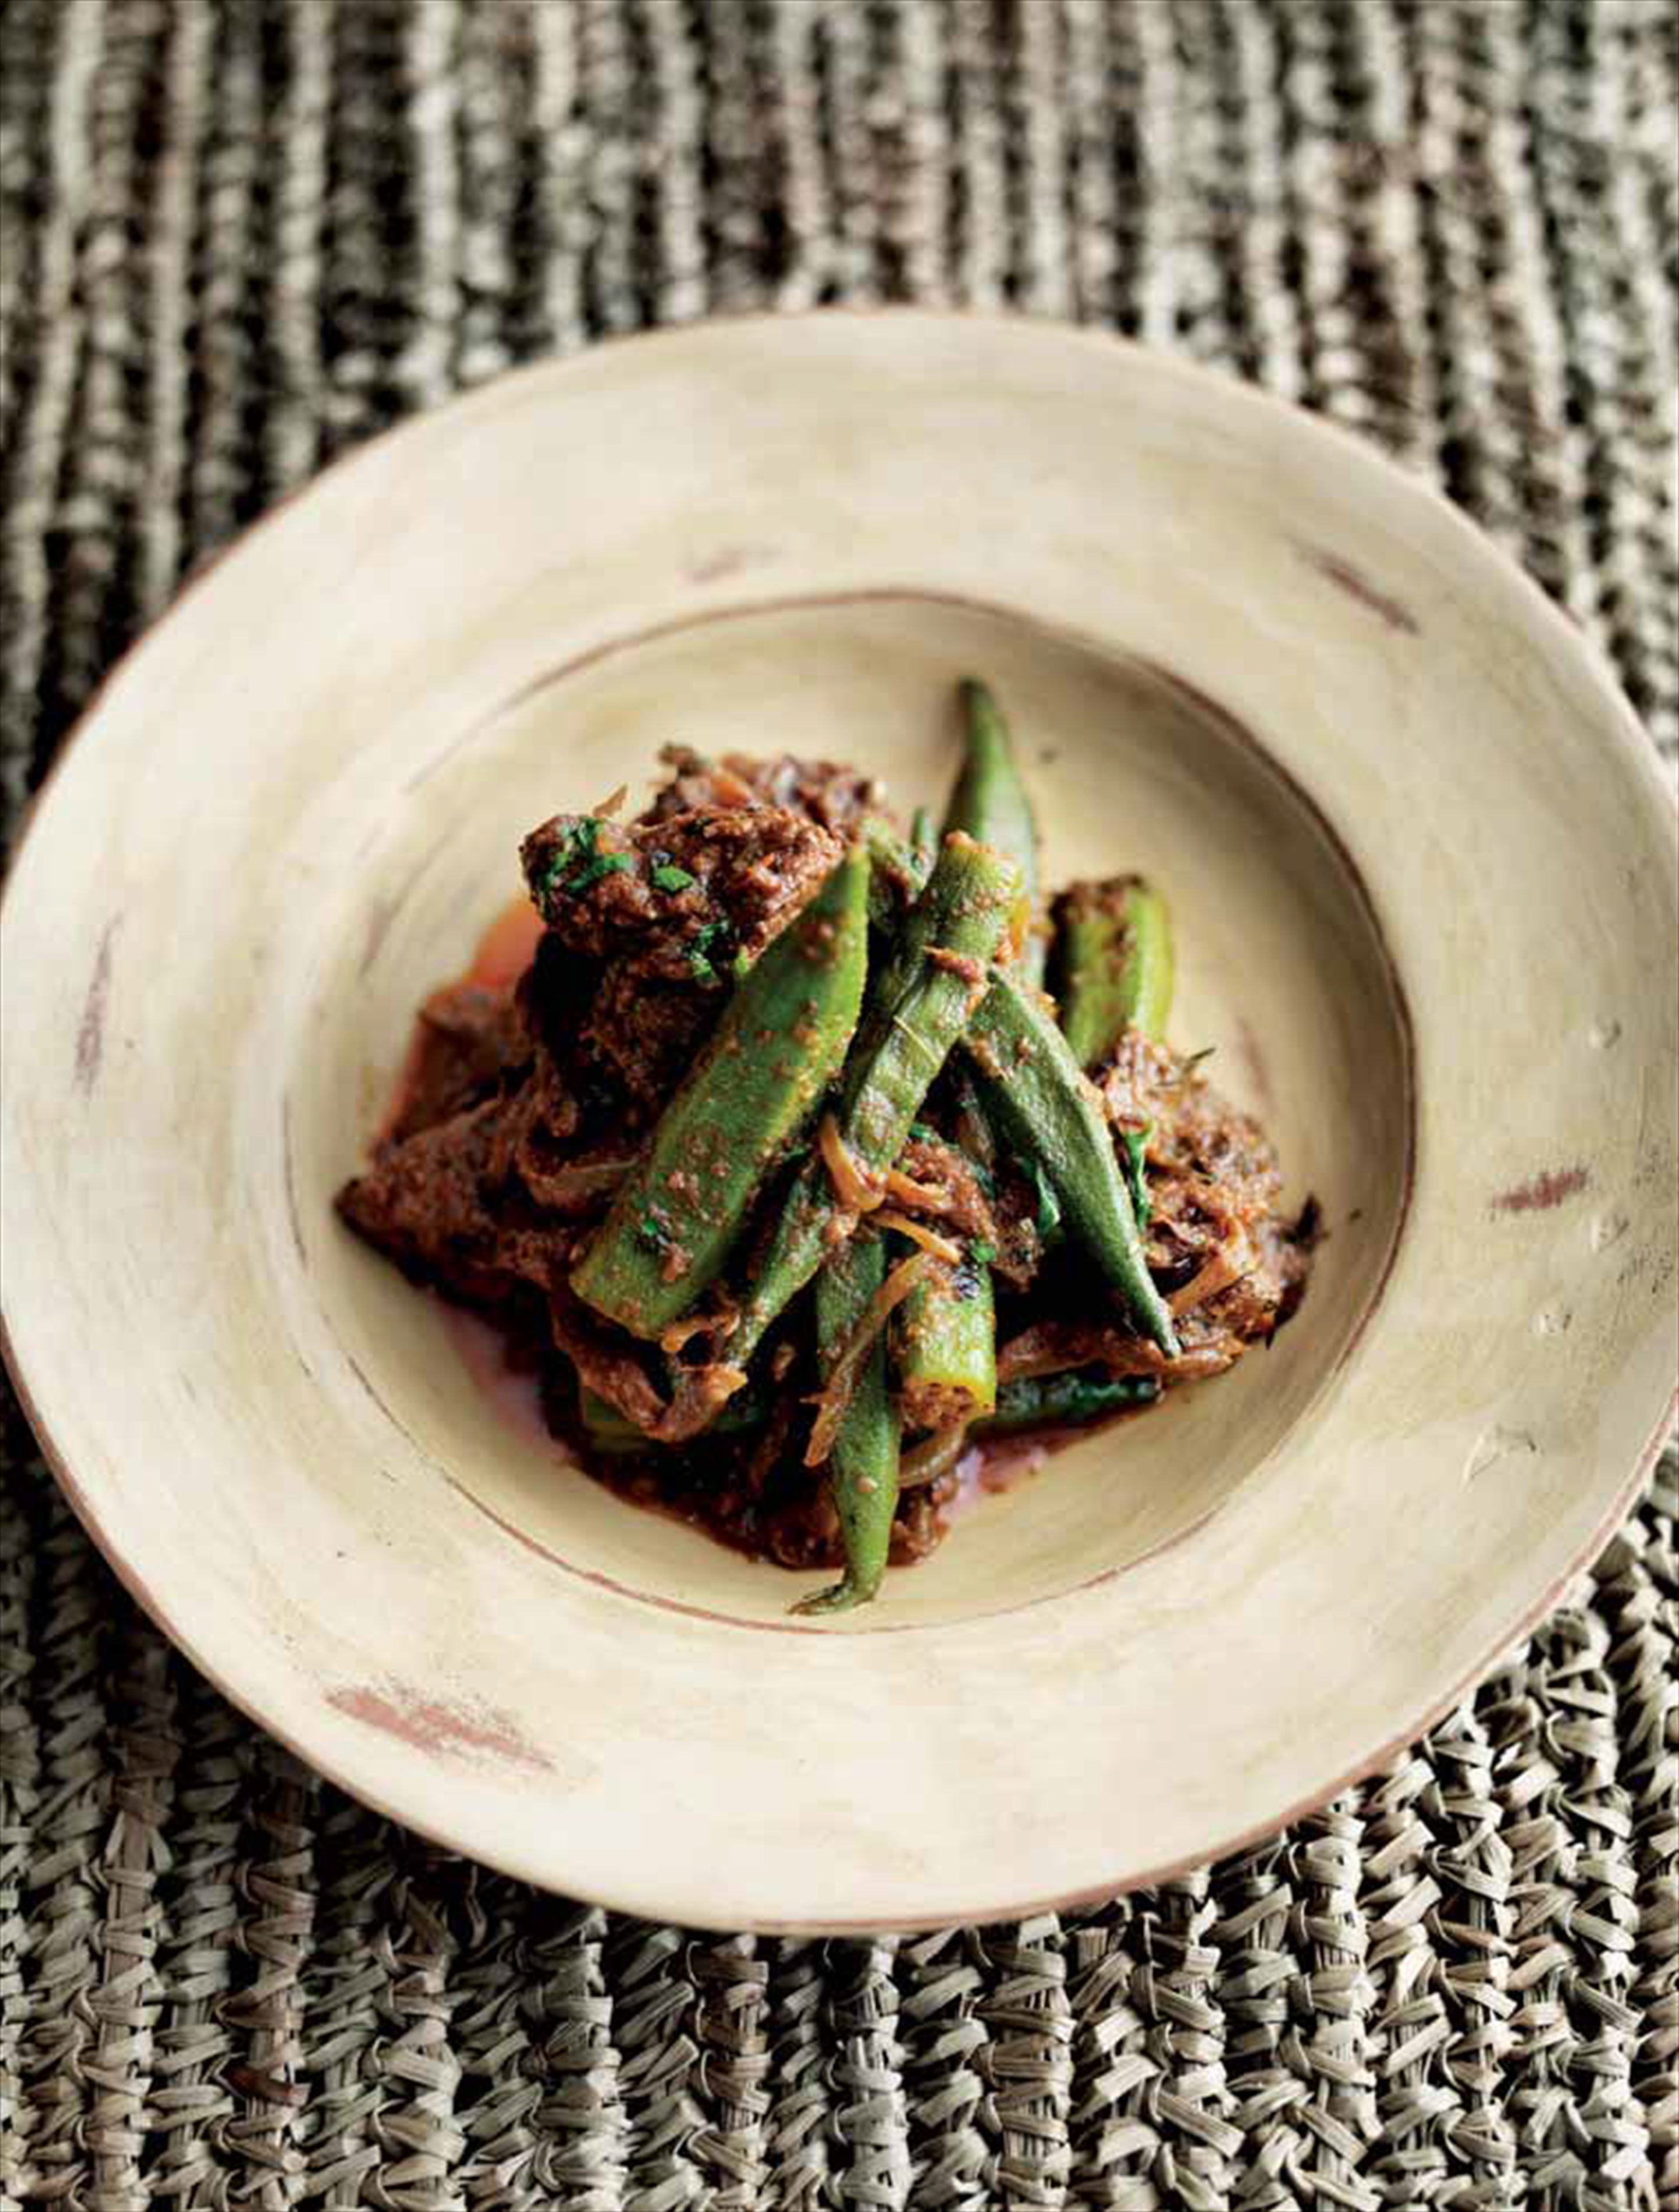 Lamb with okra